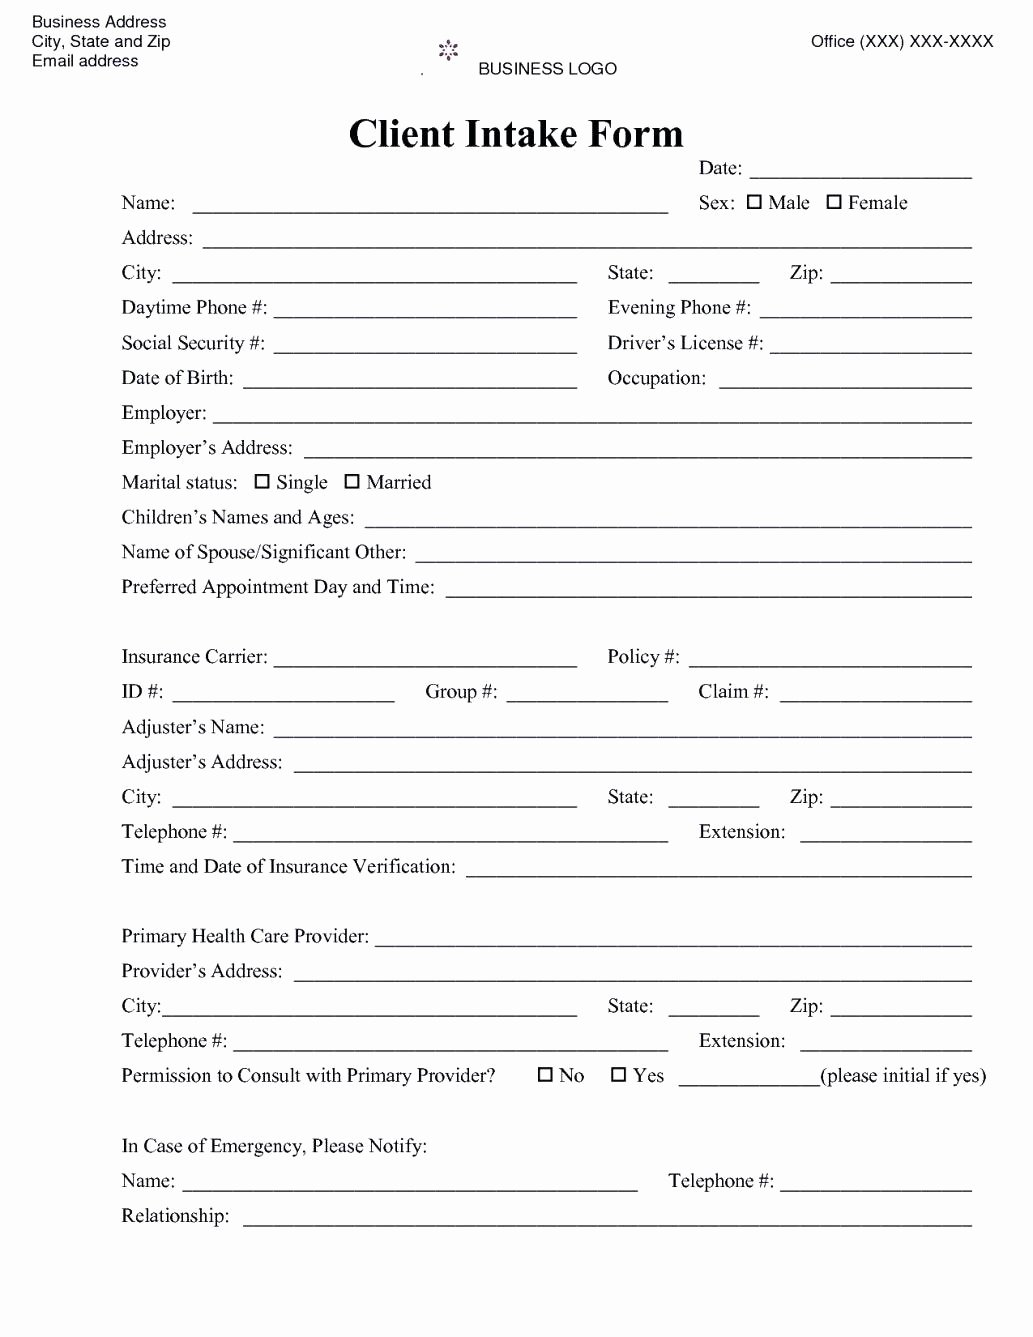 Patient Intake form Template Excel Joselinohouse